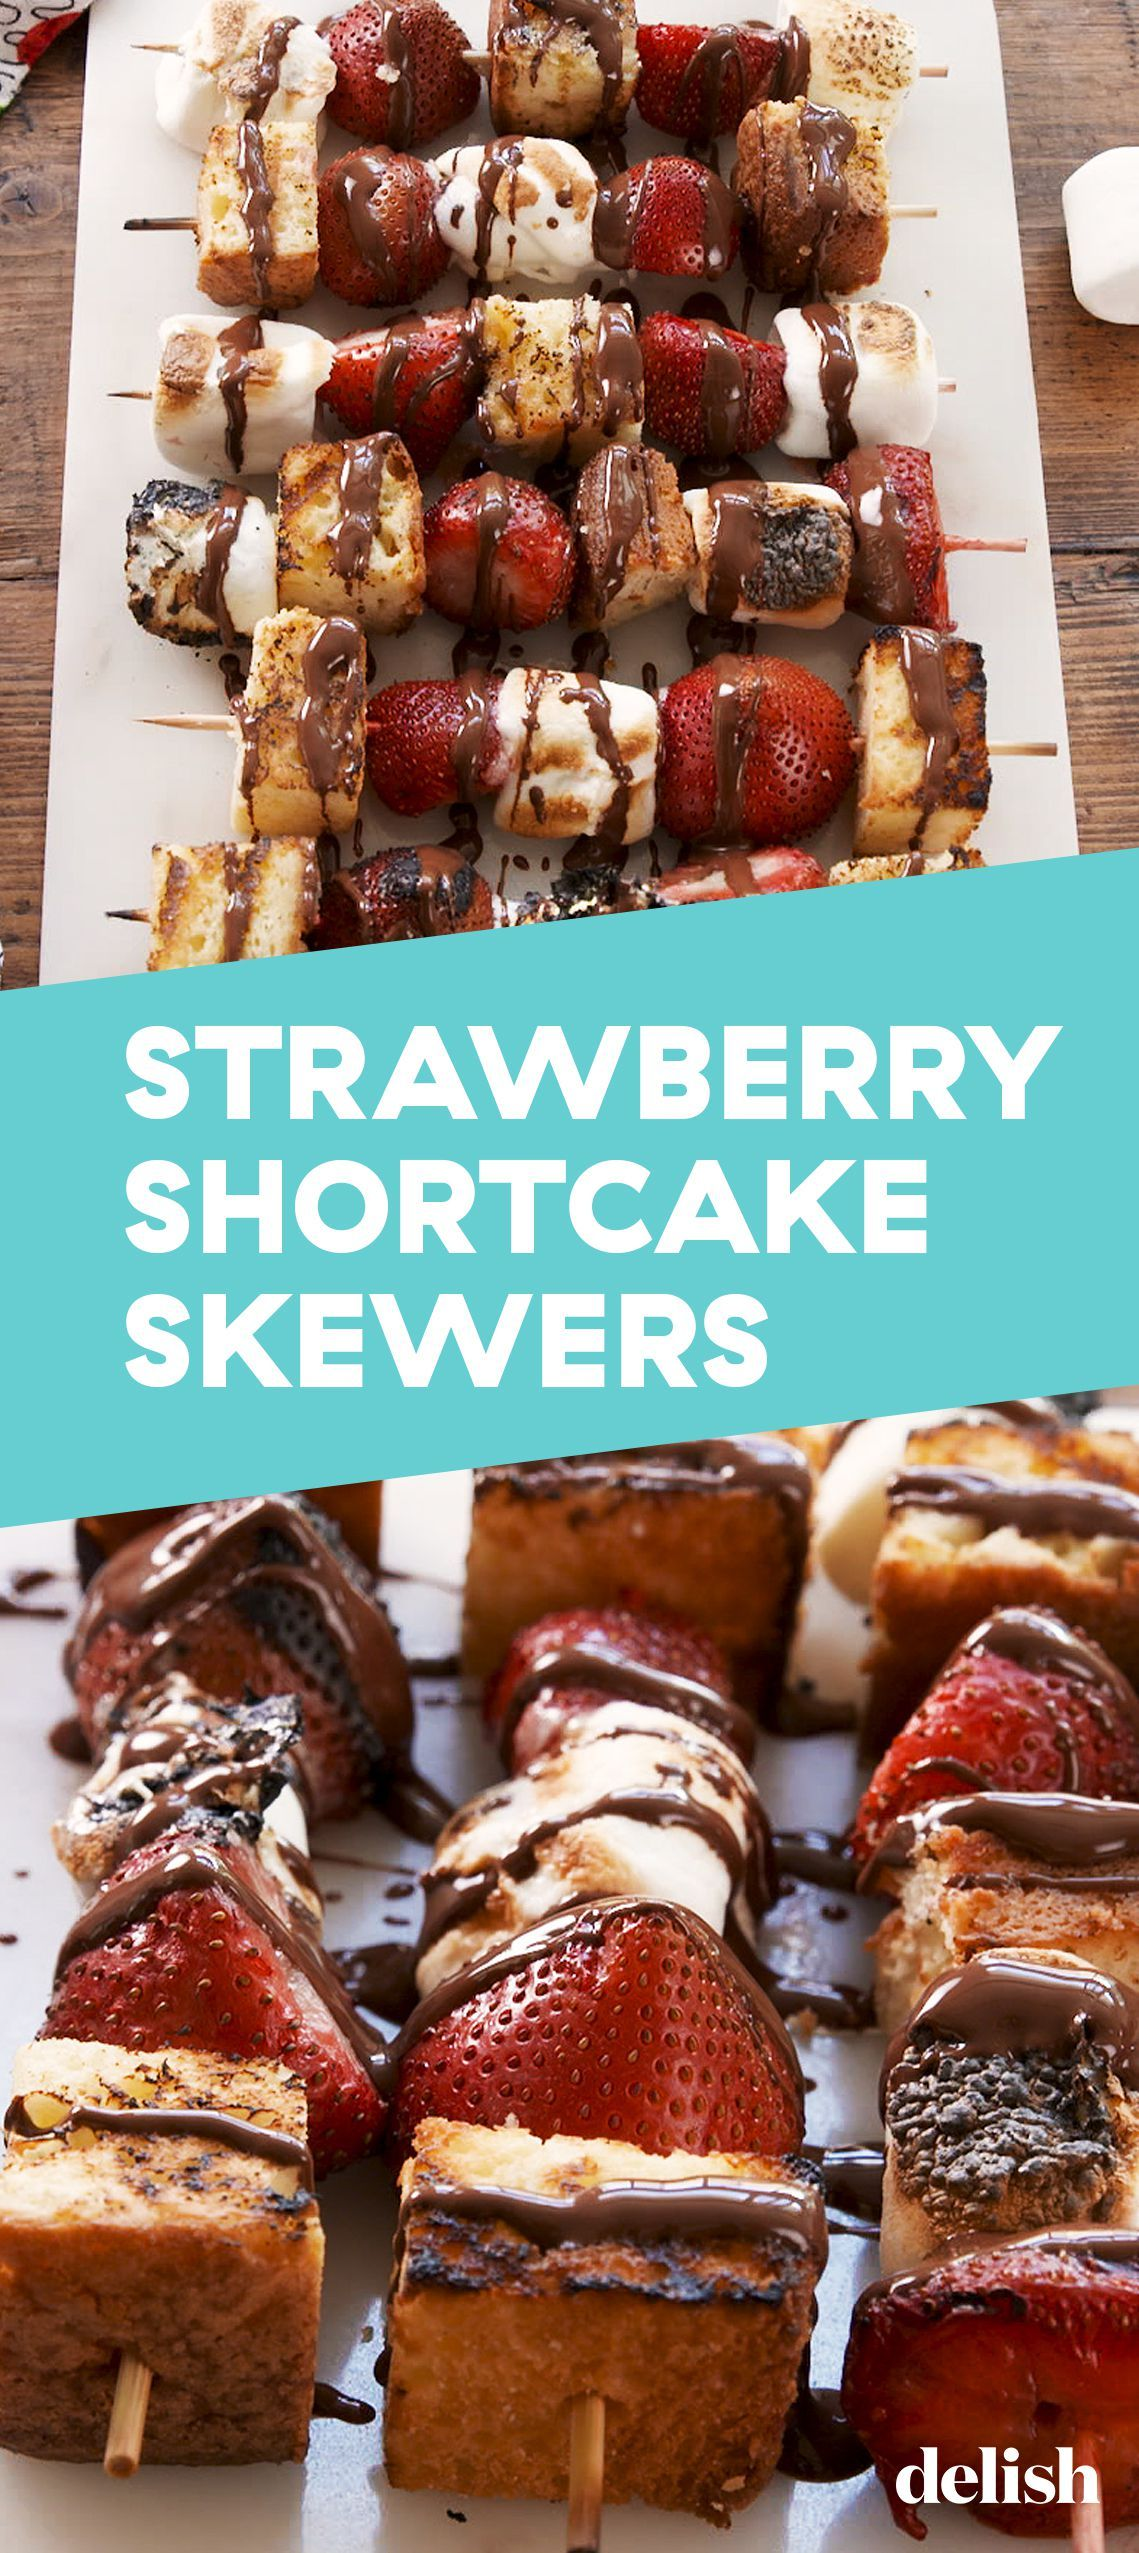 Forget Hamburgers & Hot Dogs, We're Grilling Strawberry Shortcake Skewers